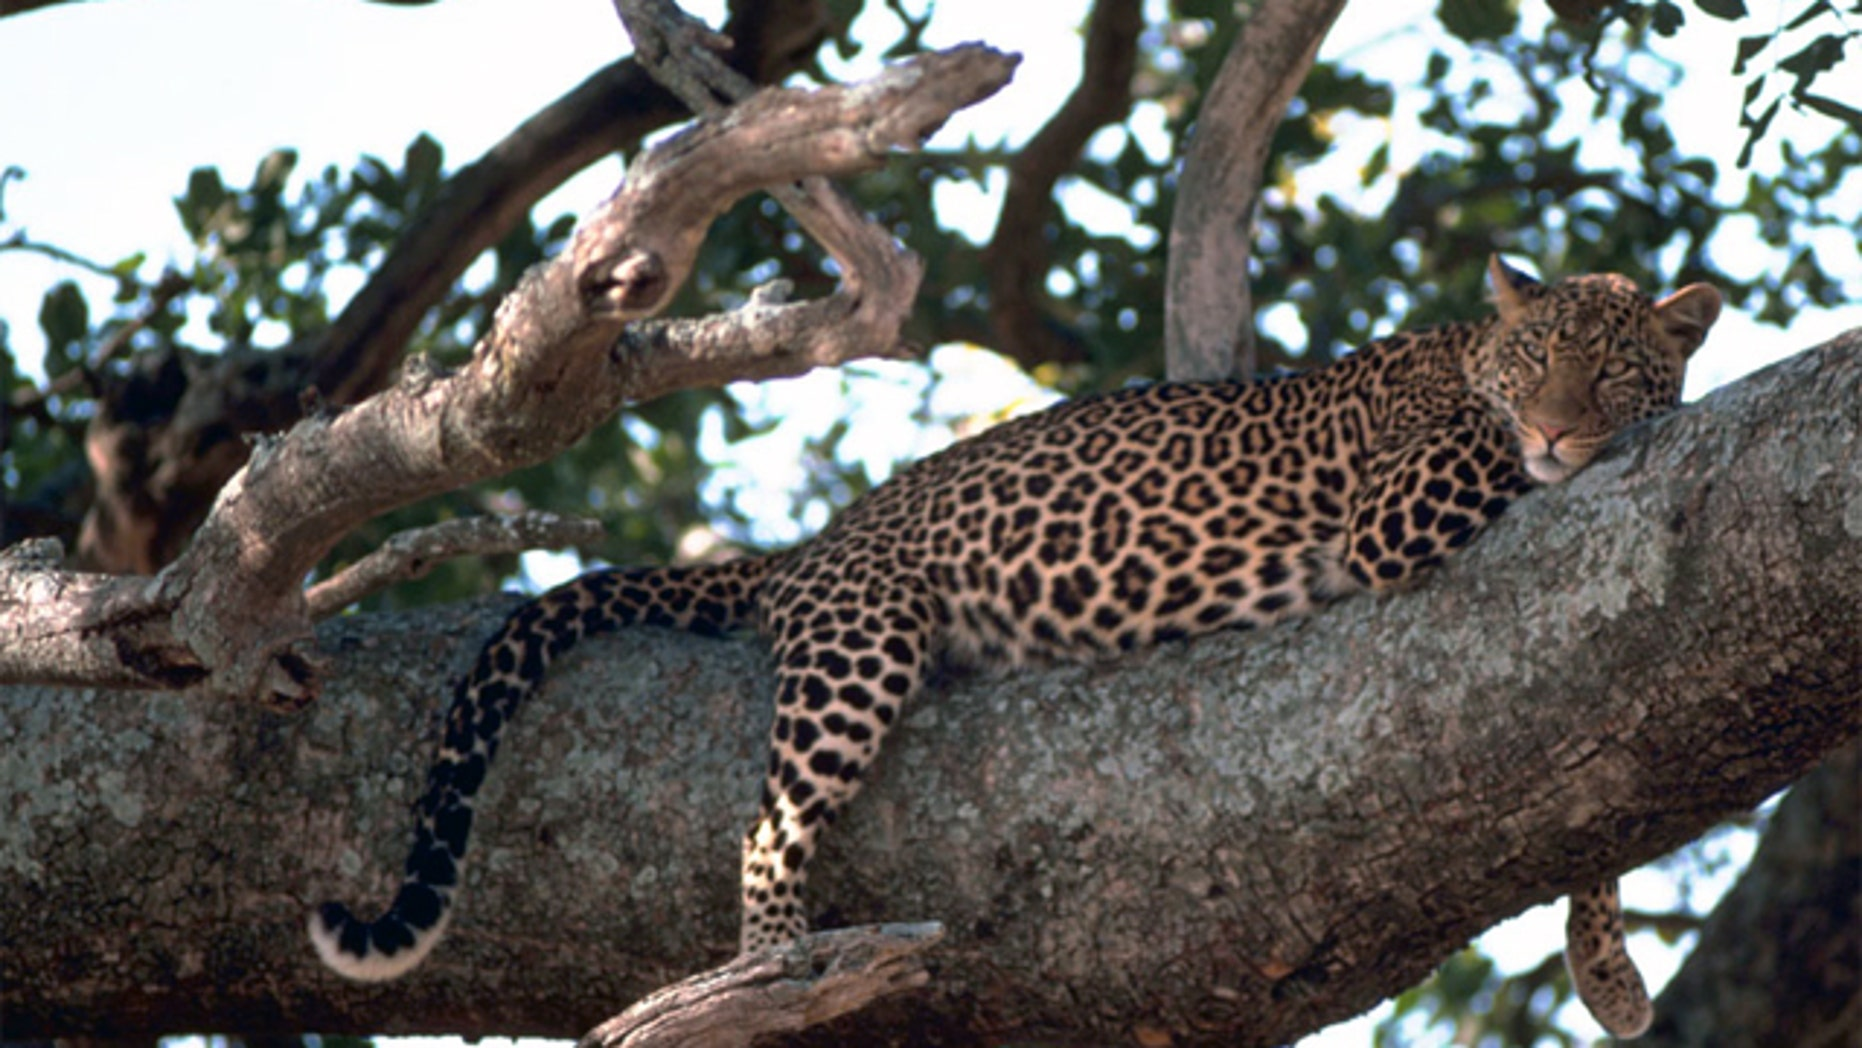 Experts are blaming locals for encroaching into leopard territory.